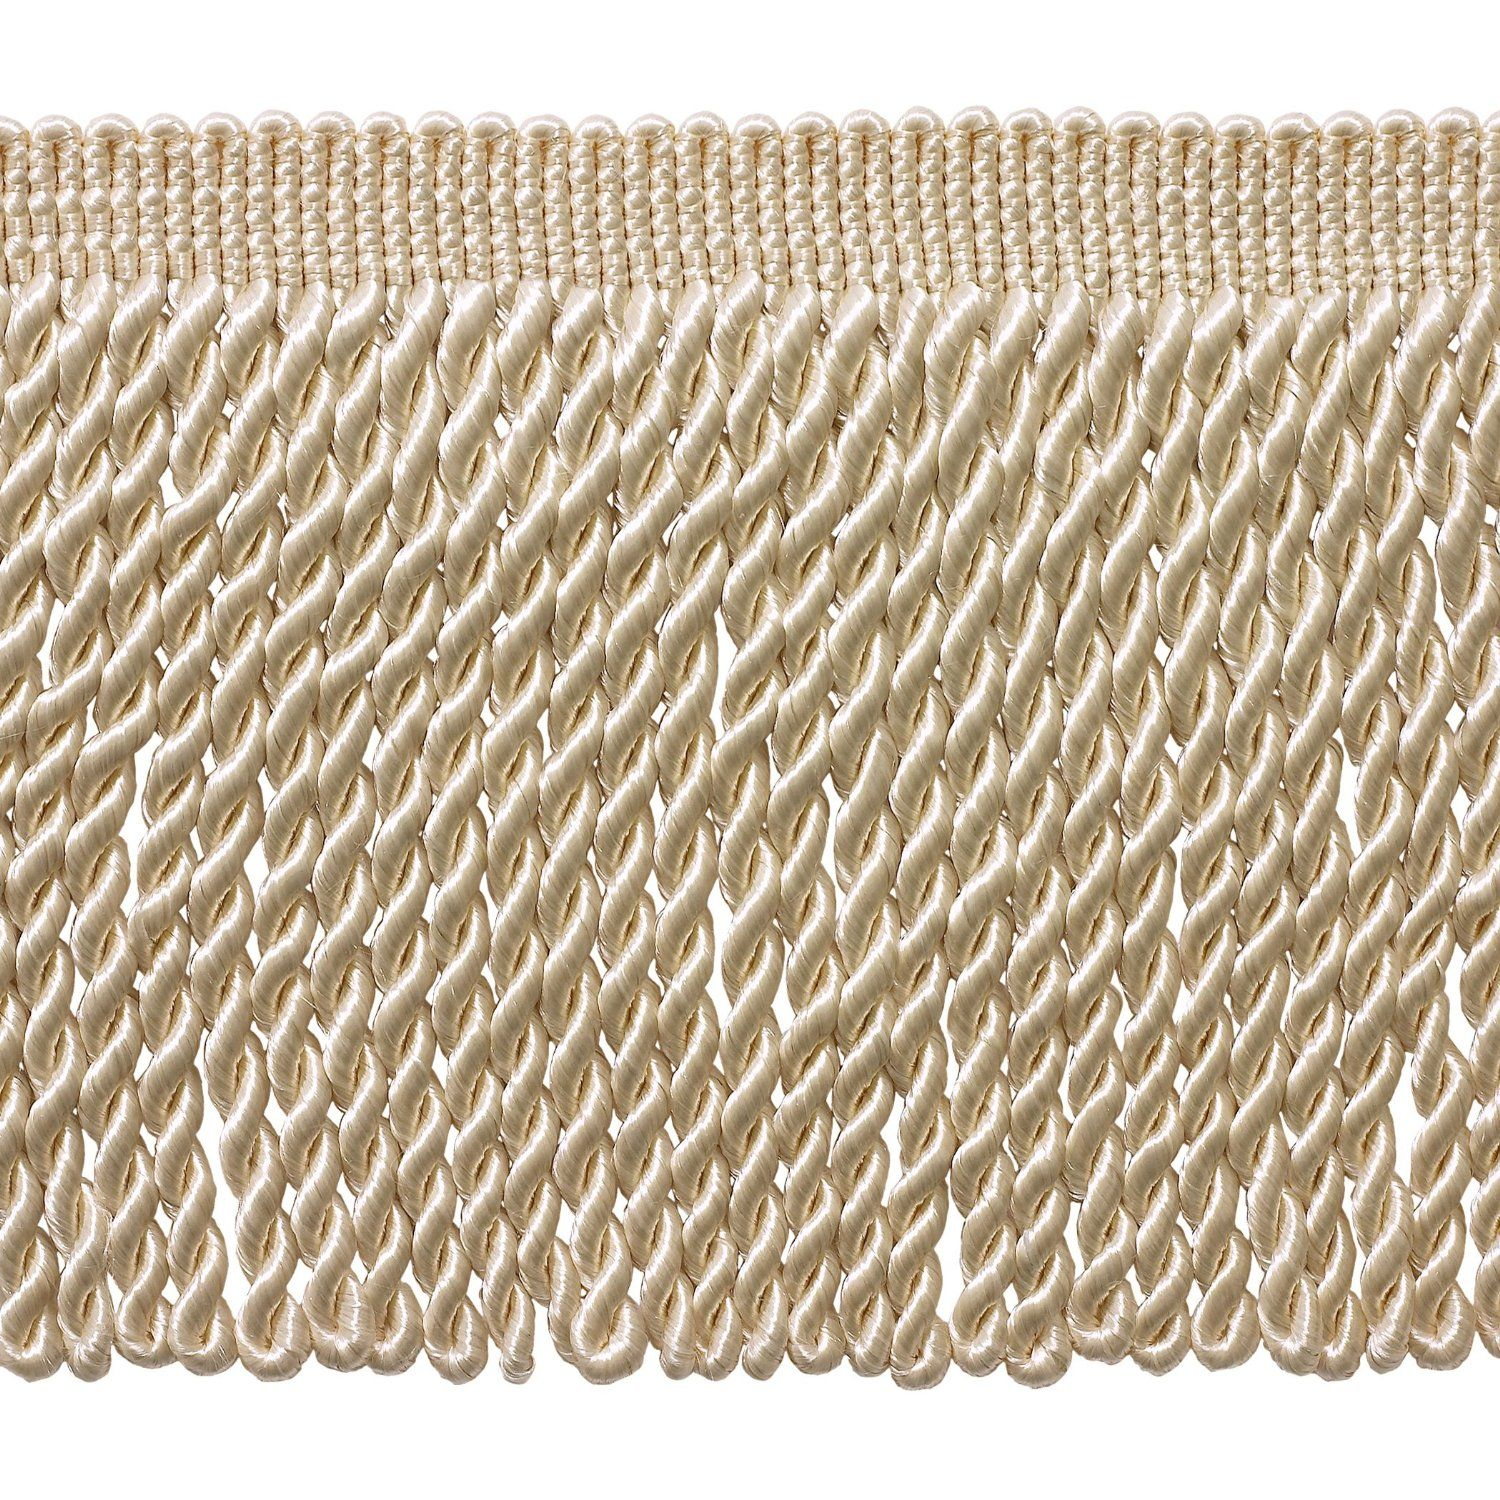 Amazon Com 6 Inch Bullion Fringe Trim Style Bfs6 Color Natural A2 Sold By The Yard Arts Crafts Sewing Bullion Things To Sell Fringe Trim